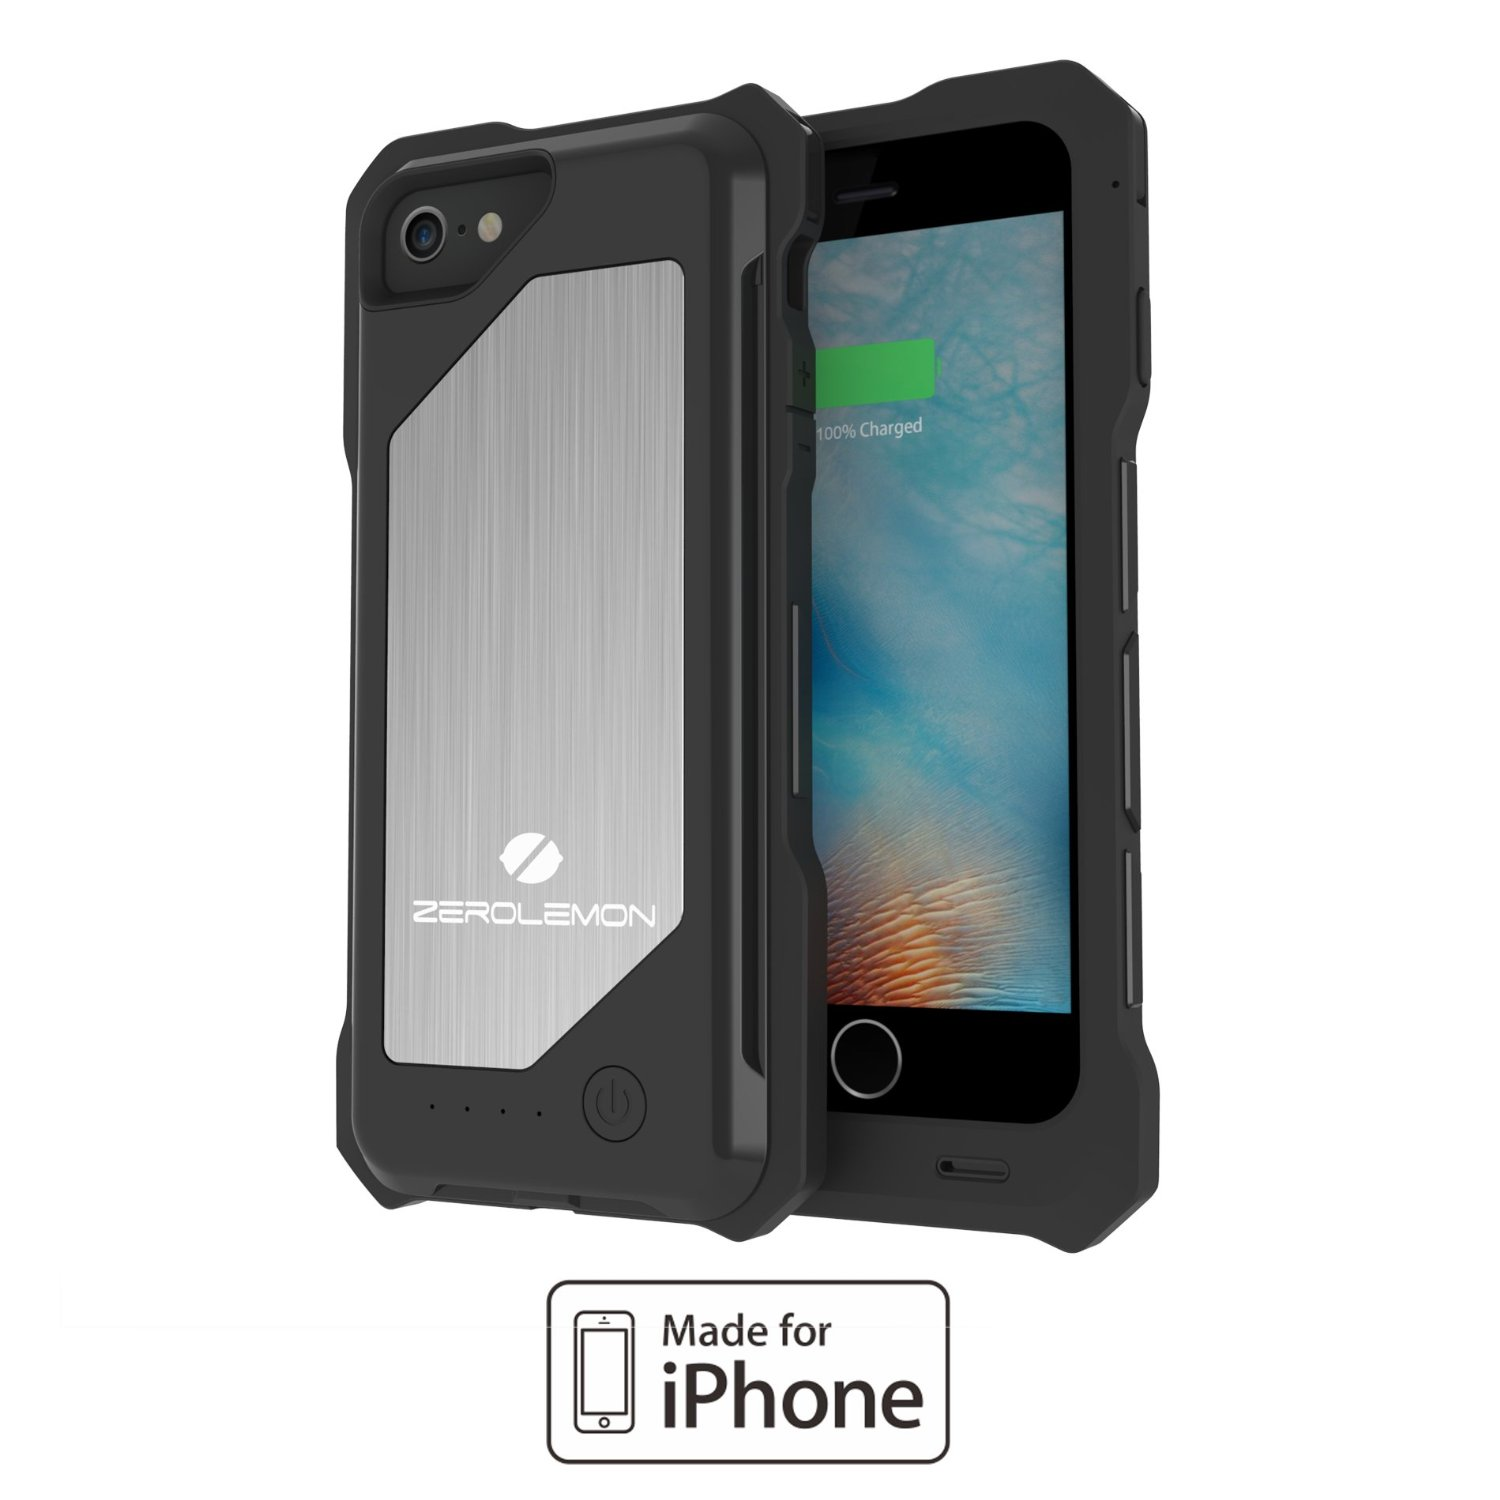 Zerolemon 3500mah Rugged Battery Case For Iphone 6 6s 12